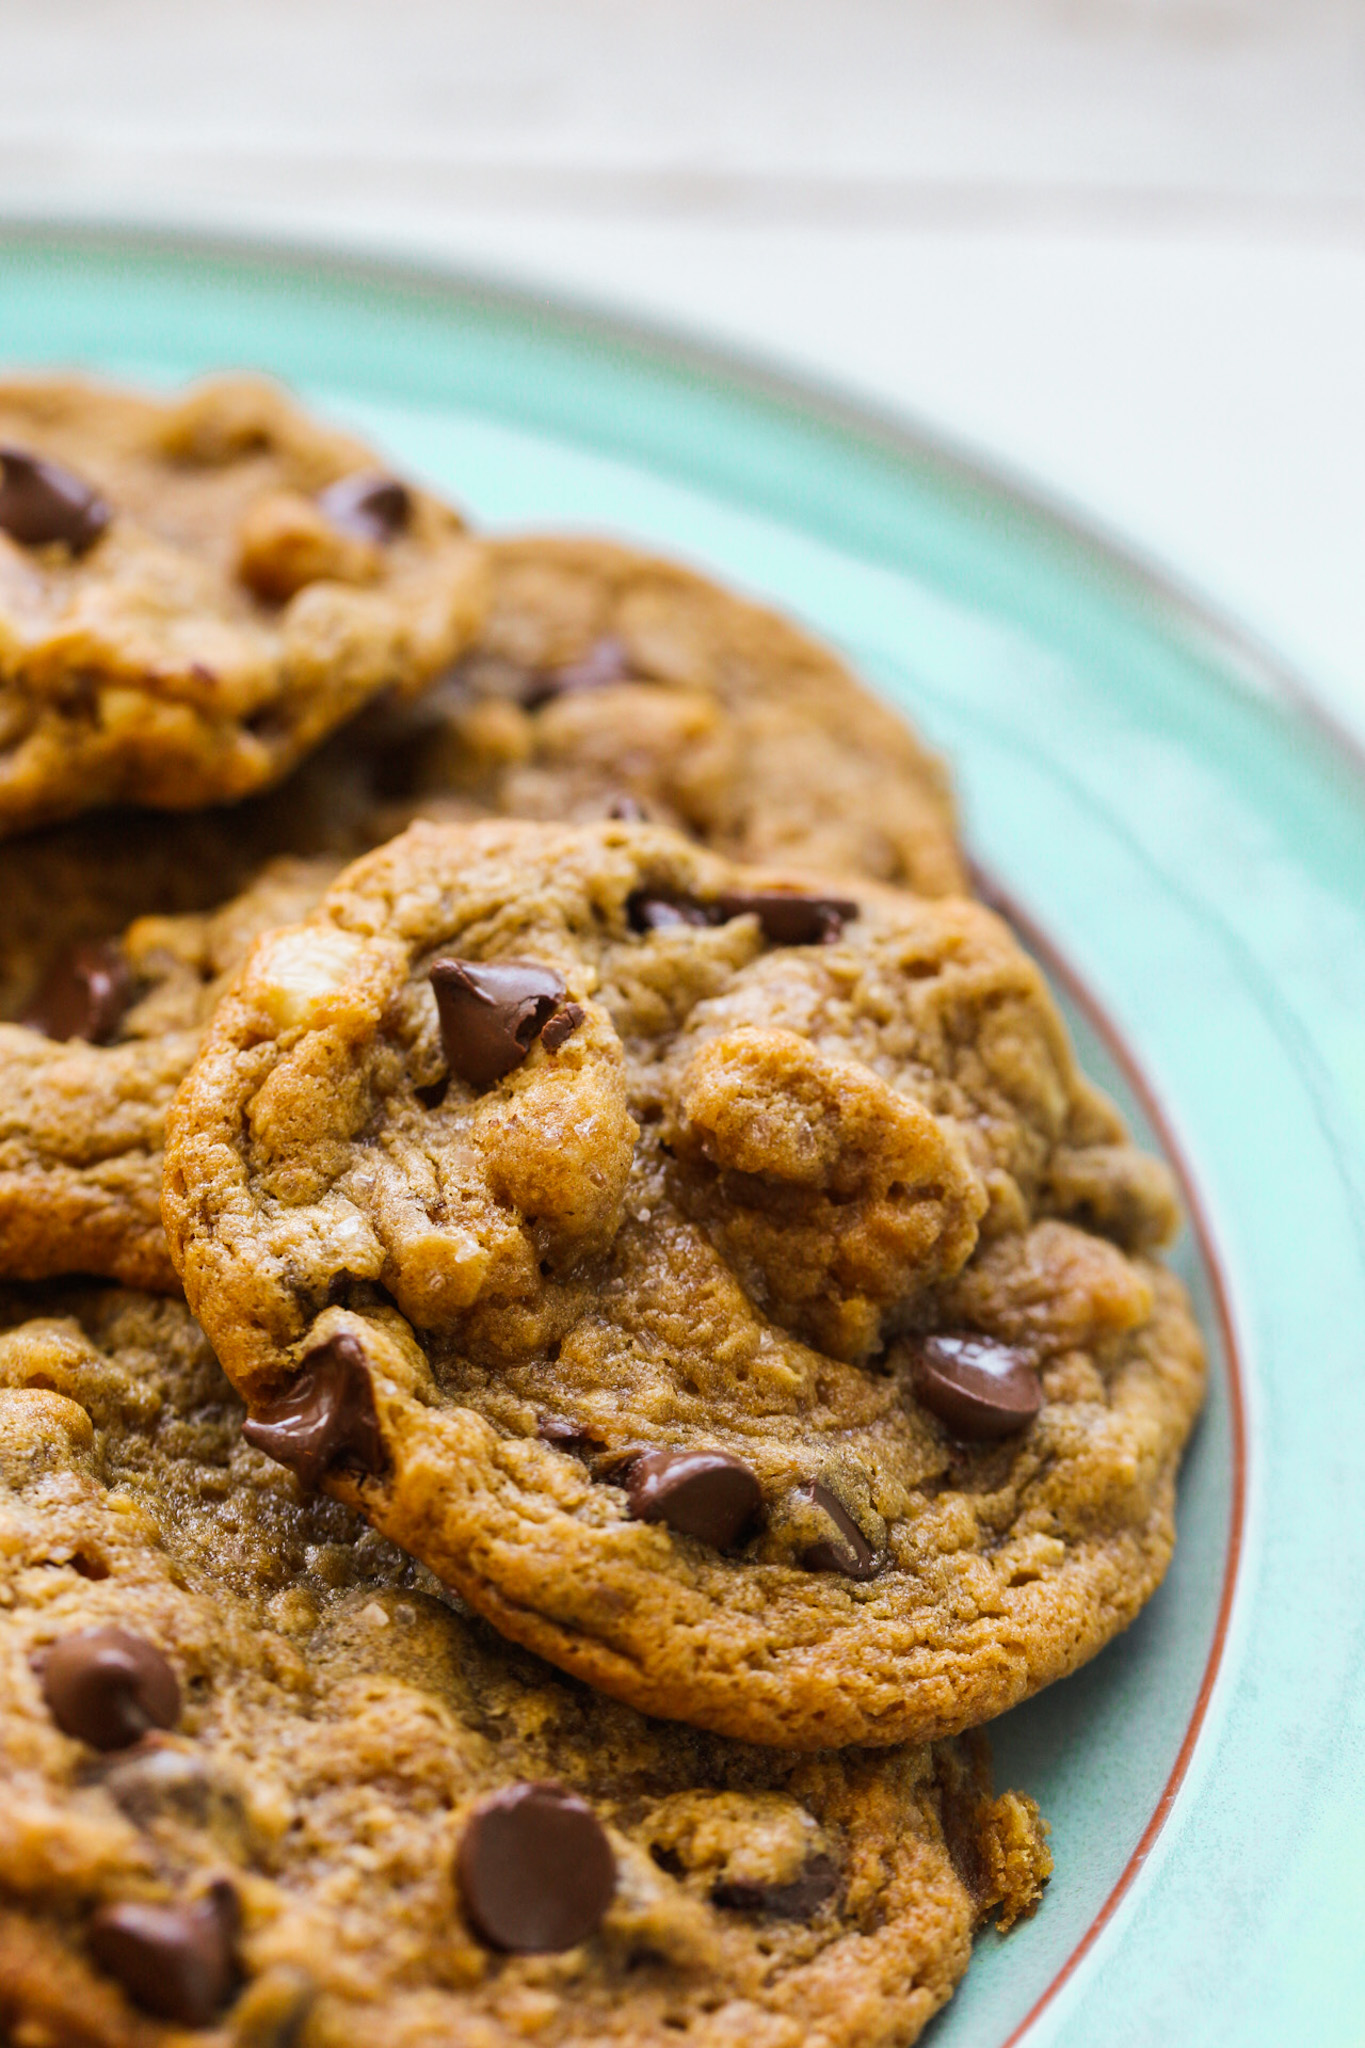 chewy chocolate chip cookies on teal plate